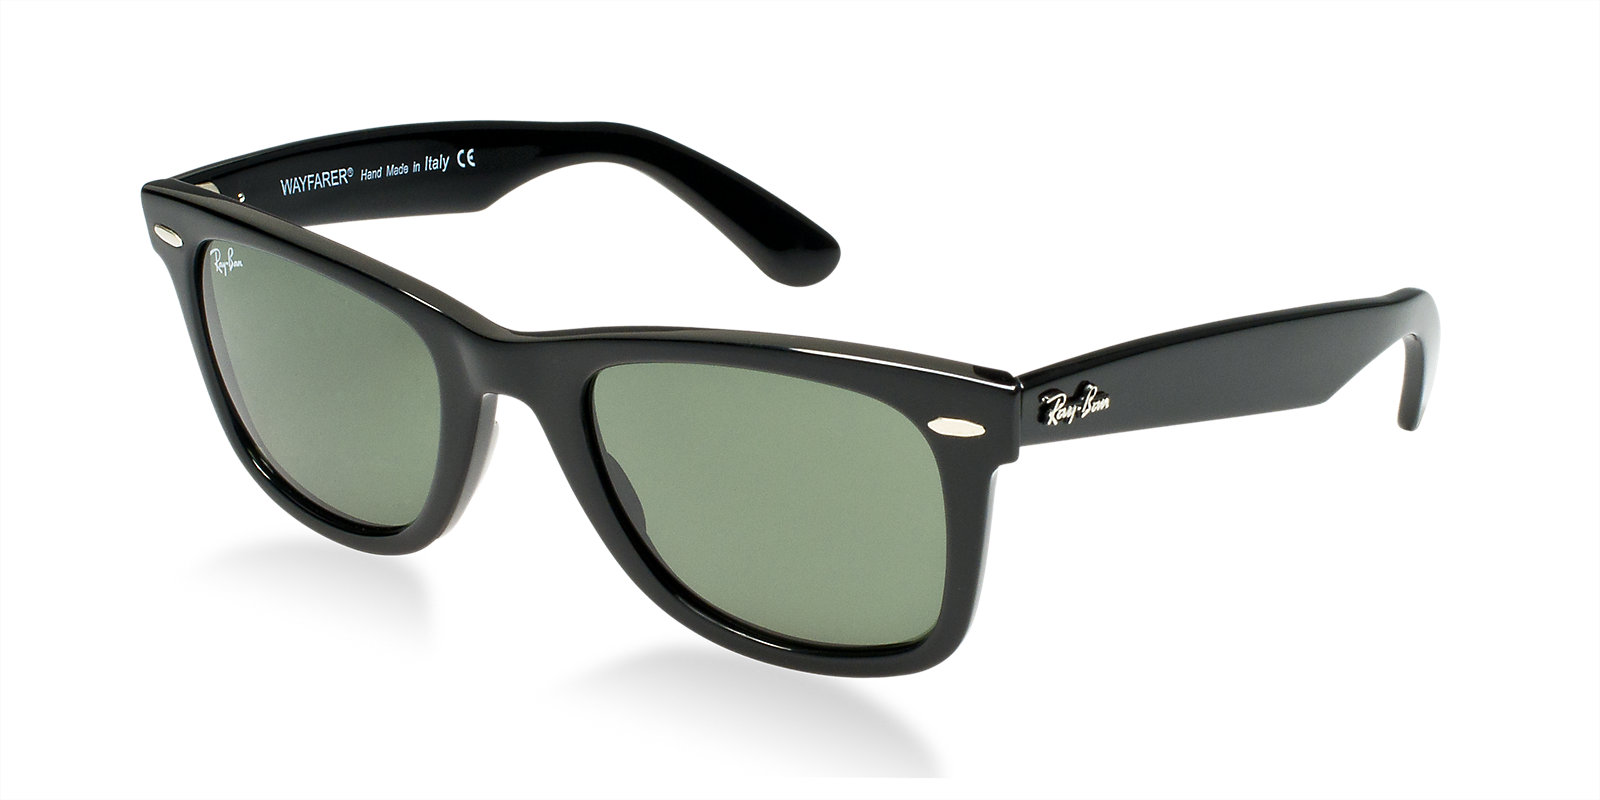 RAY-BAN RB2140 901 BLACK CLASSIC WAYFARER SUNGLASSES  c49891d38b420